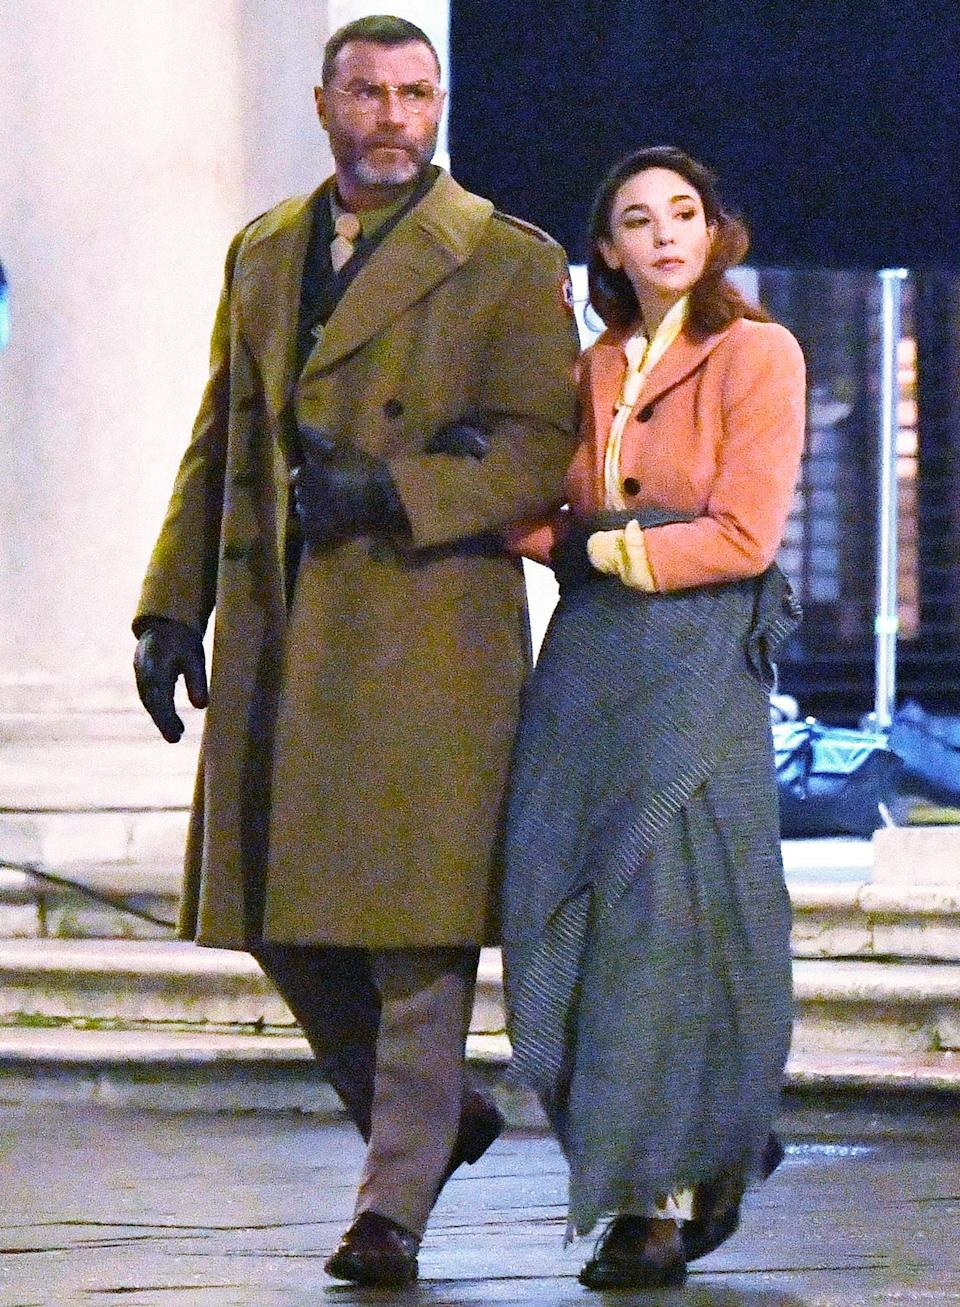 <p>Liev Schreiber and Matilda De Angelis are seen in full character on the set of <em>Across the River and into the Trees</em> in Venice, Italy on Monday.</p>